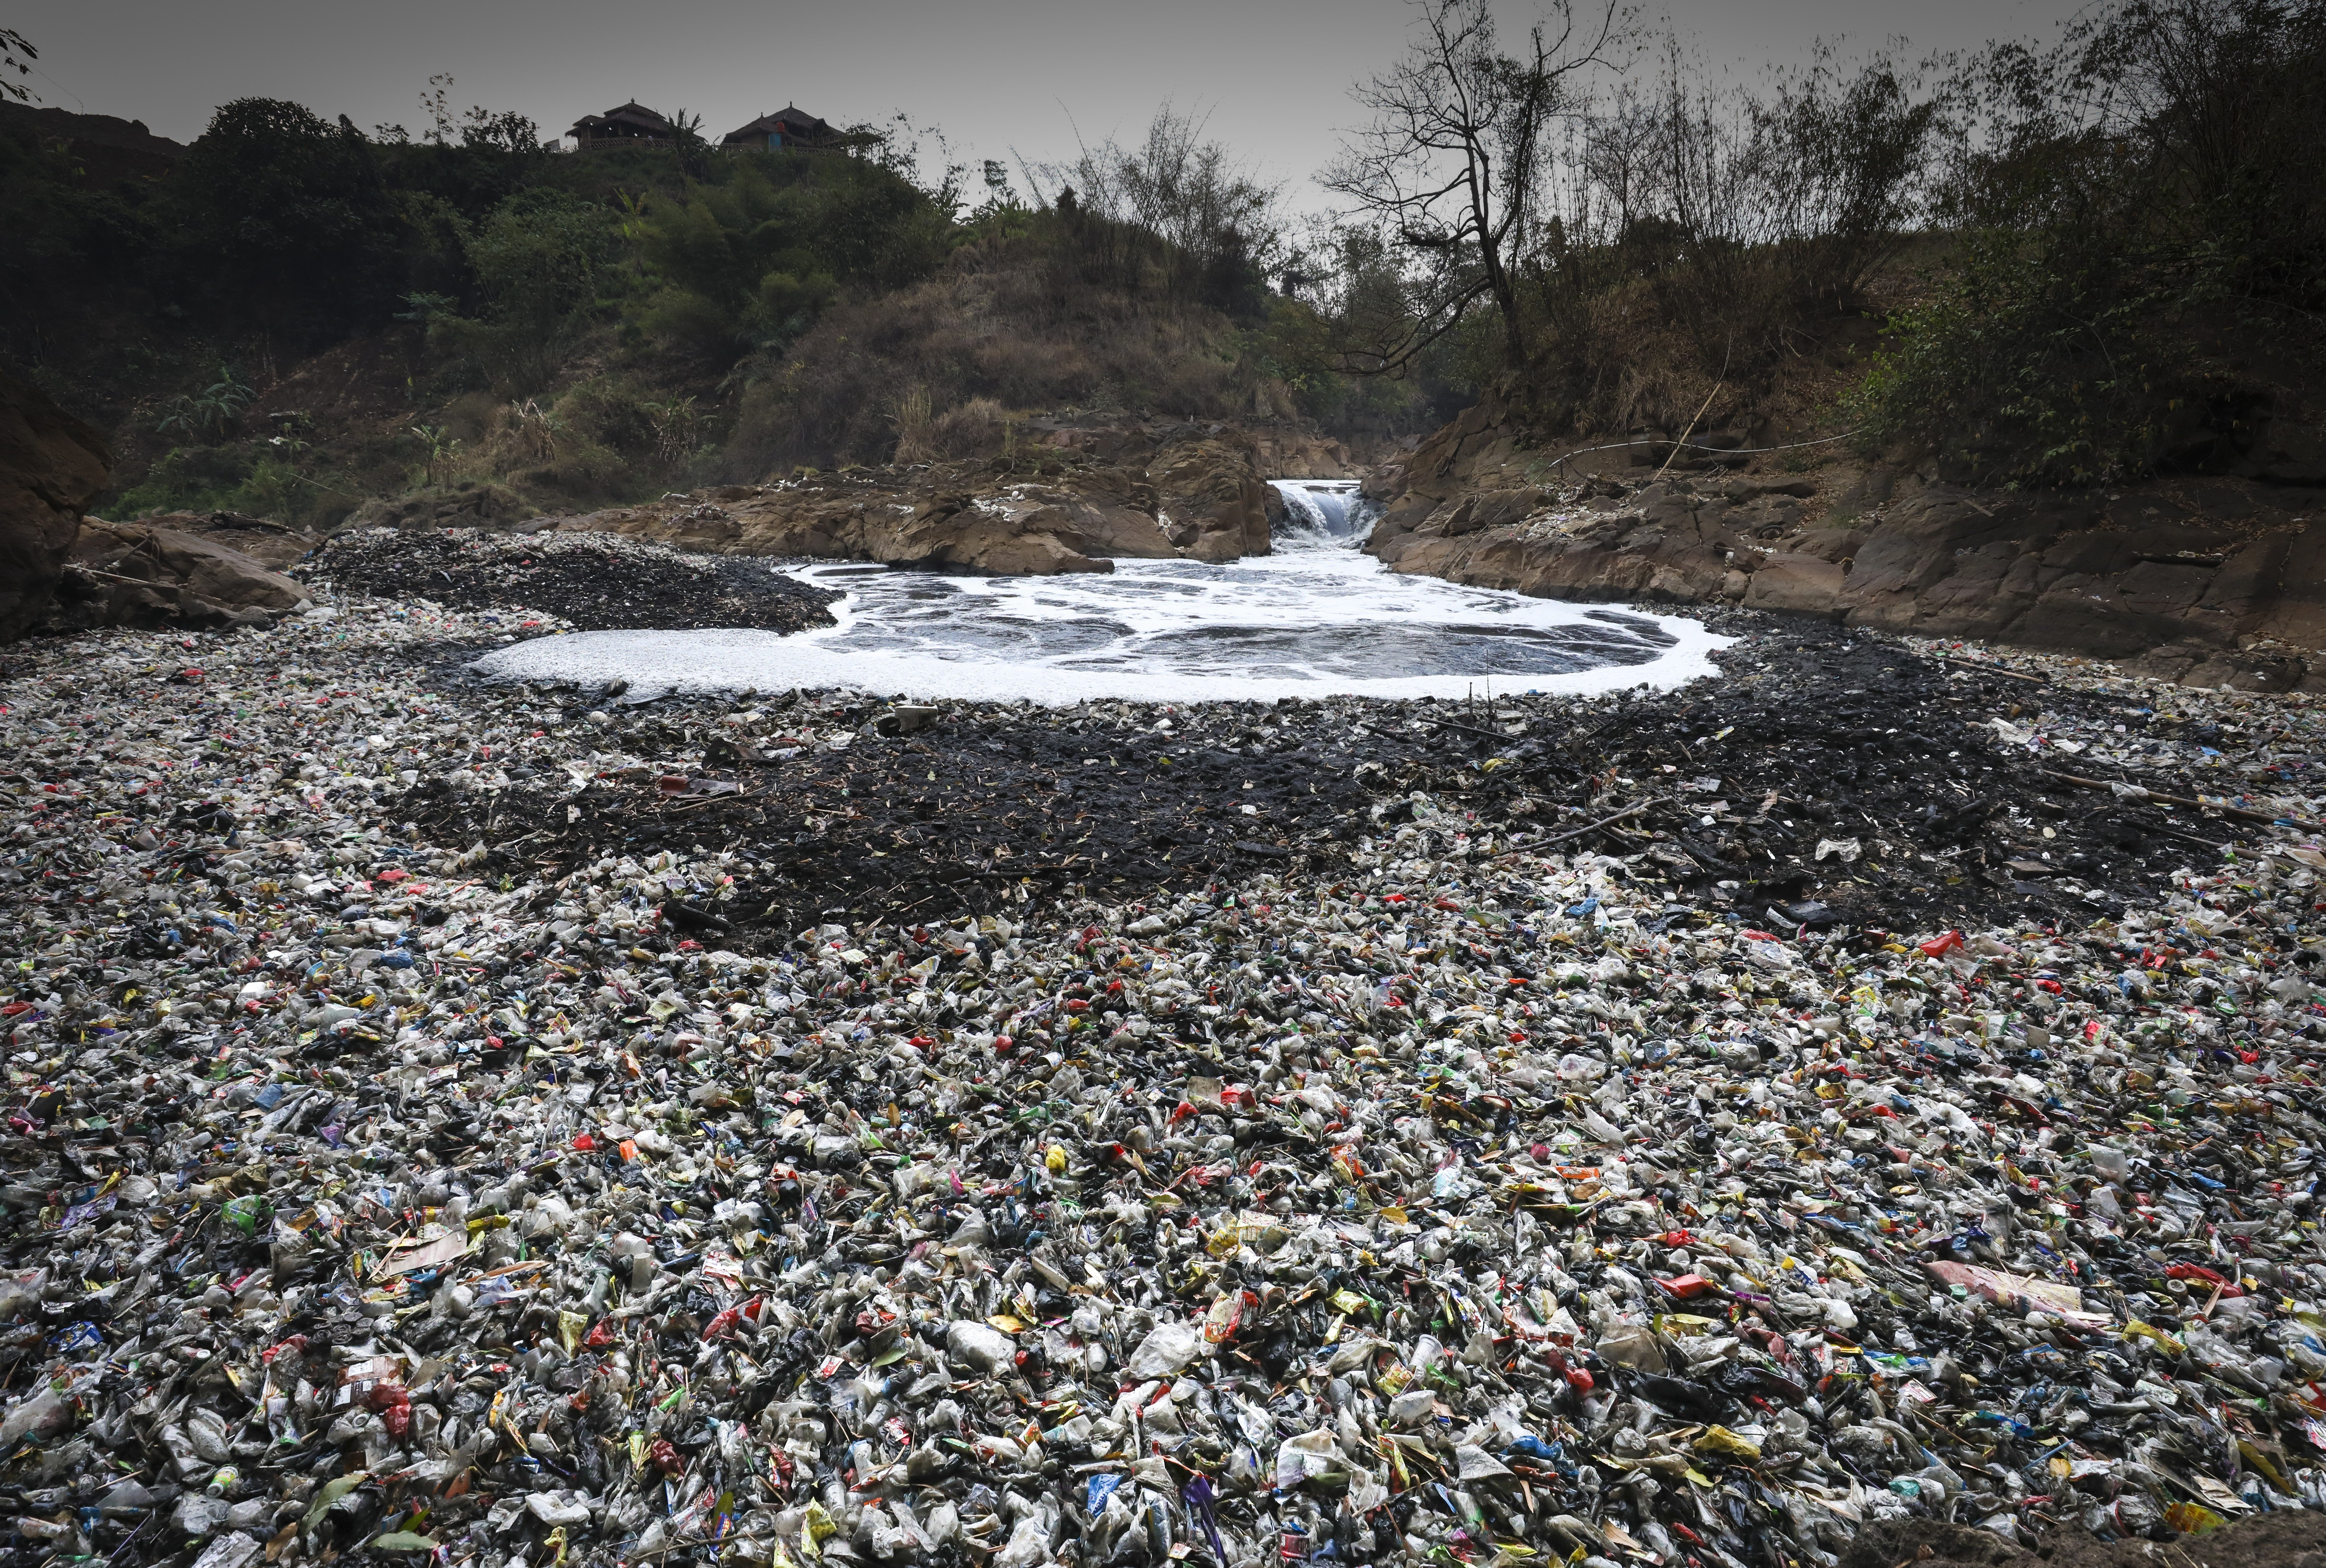 In Indonesia, cleaning up the Citarum, 'the world's dirtiest